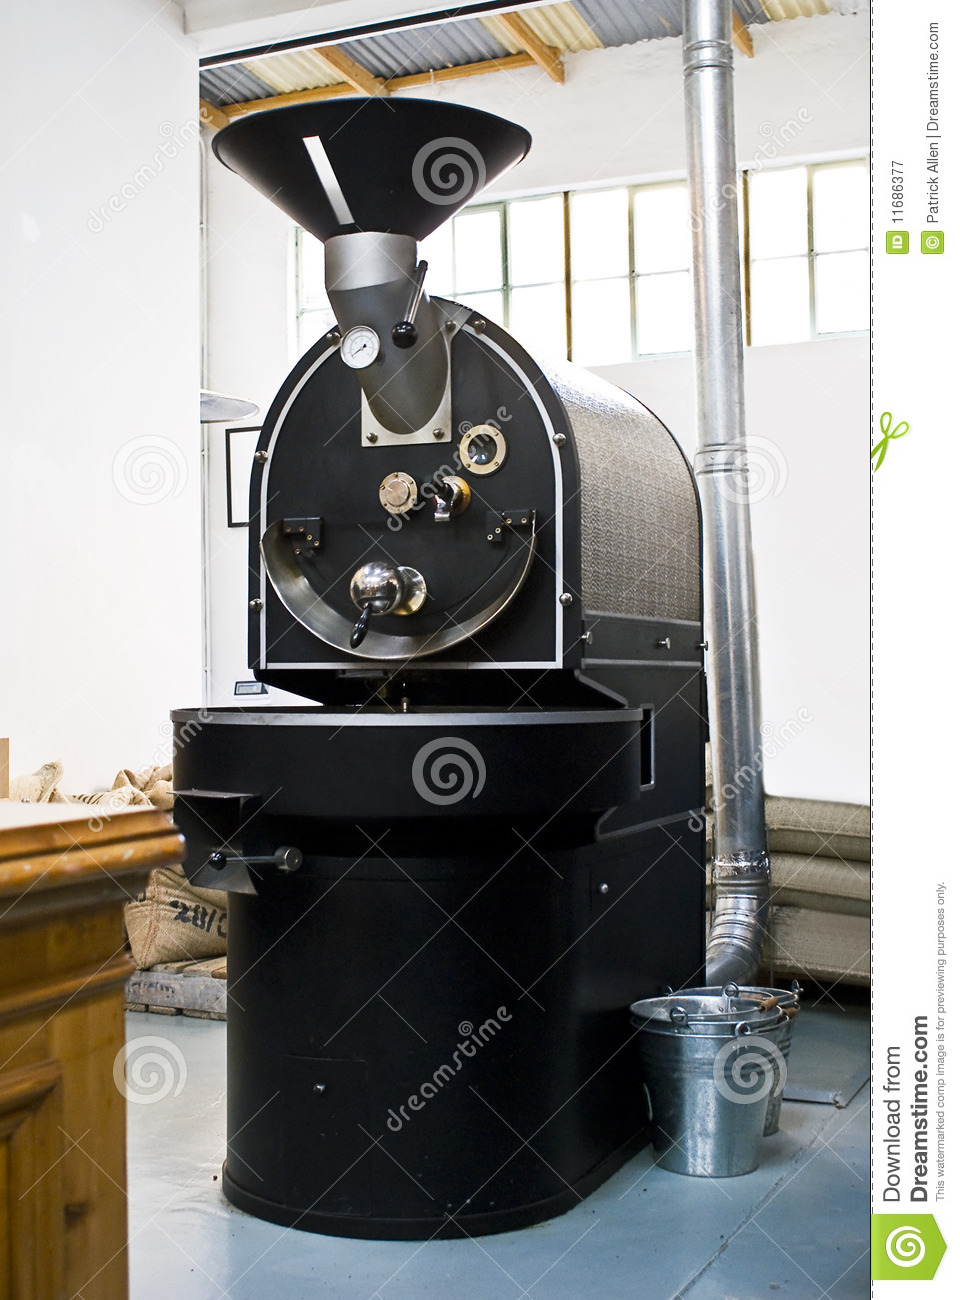 Commercial Coffee Drum Roaster Royalty Free Stock